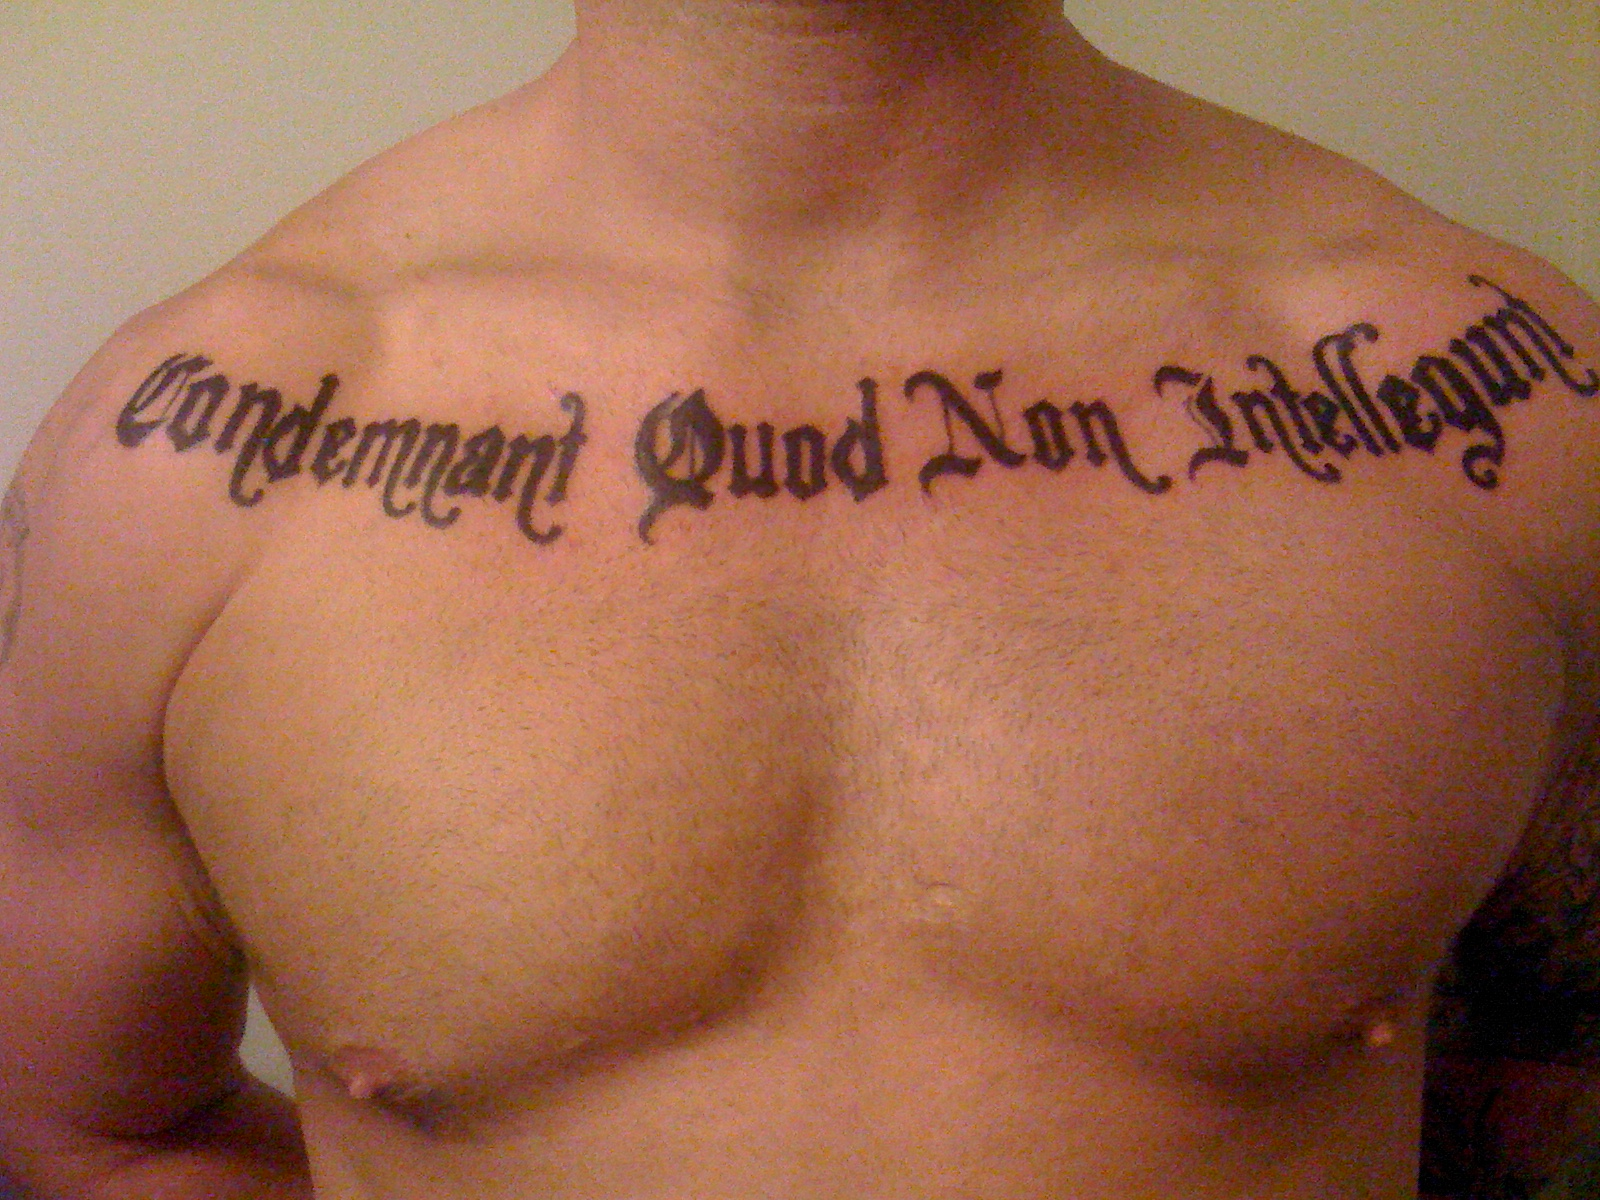 Inspirational tattoos designs ideas and meaning tattoos for Latin scripture tattoos